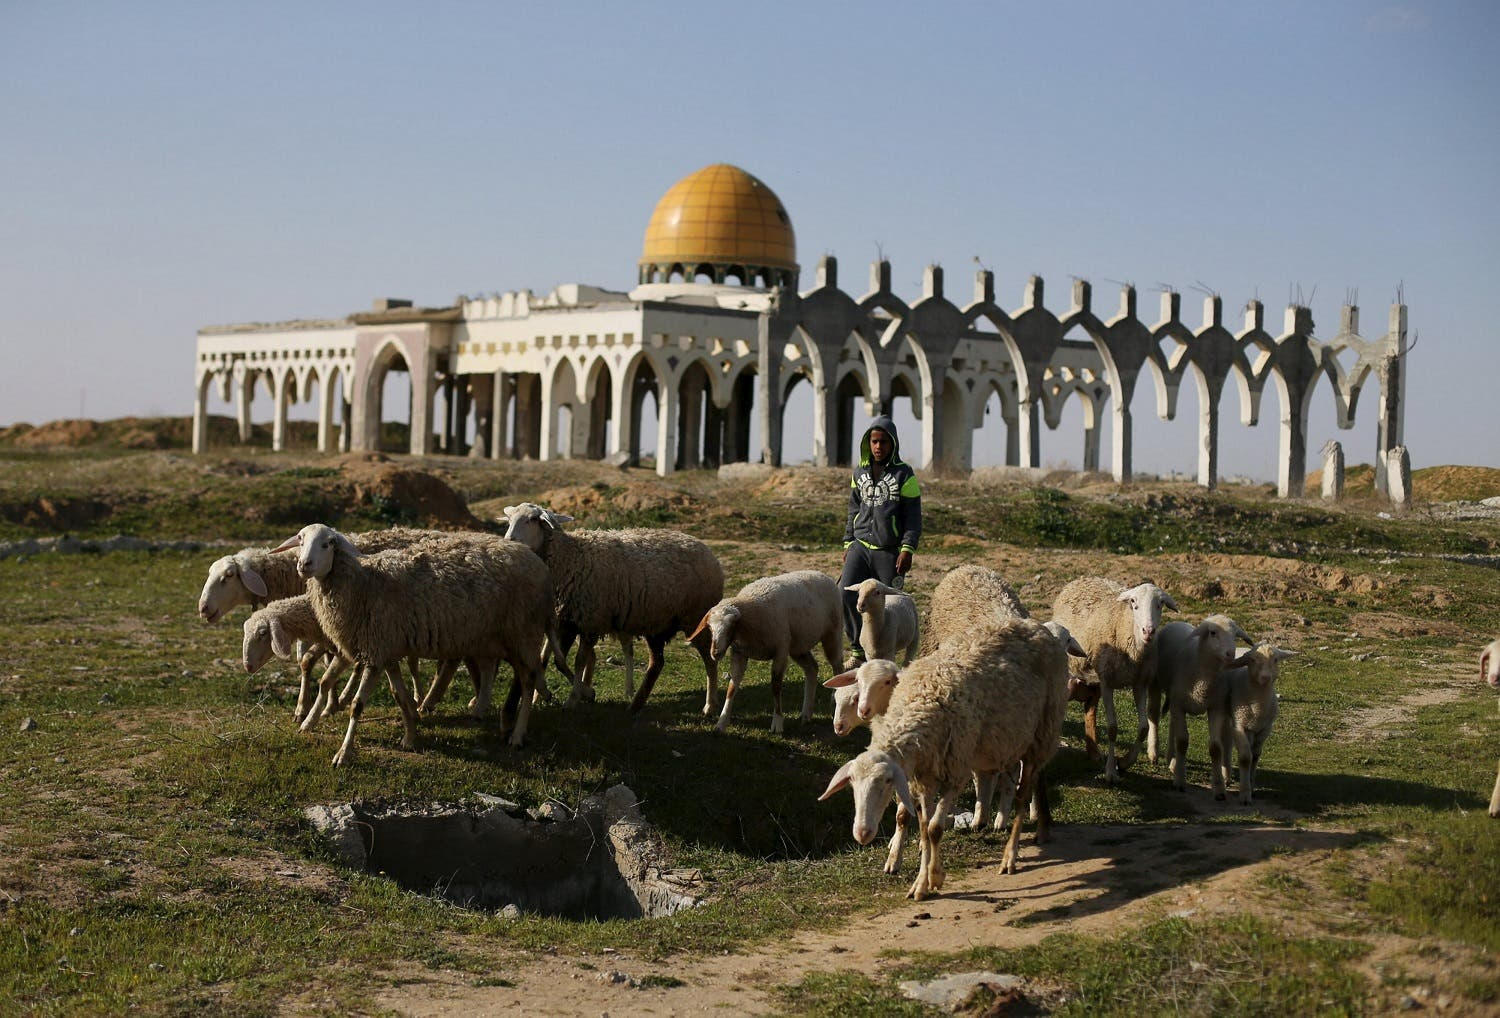 Palestinian boy herds sheep in front of the ruins of Yasser Arafat International Airport, which was bombed by Israel in the past, in Rafah in the southern Gaza Strip. (Reuters)